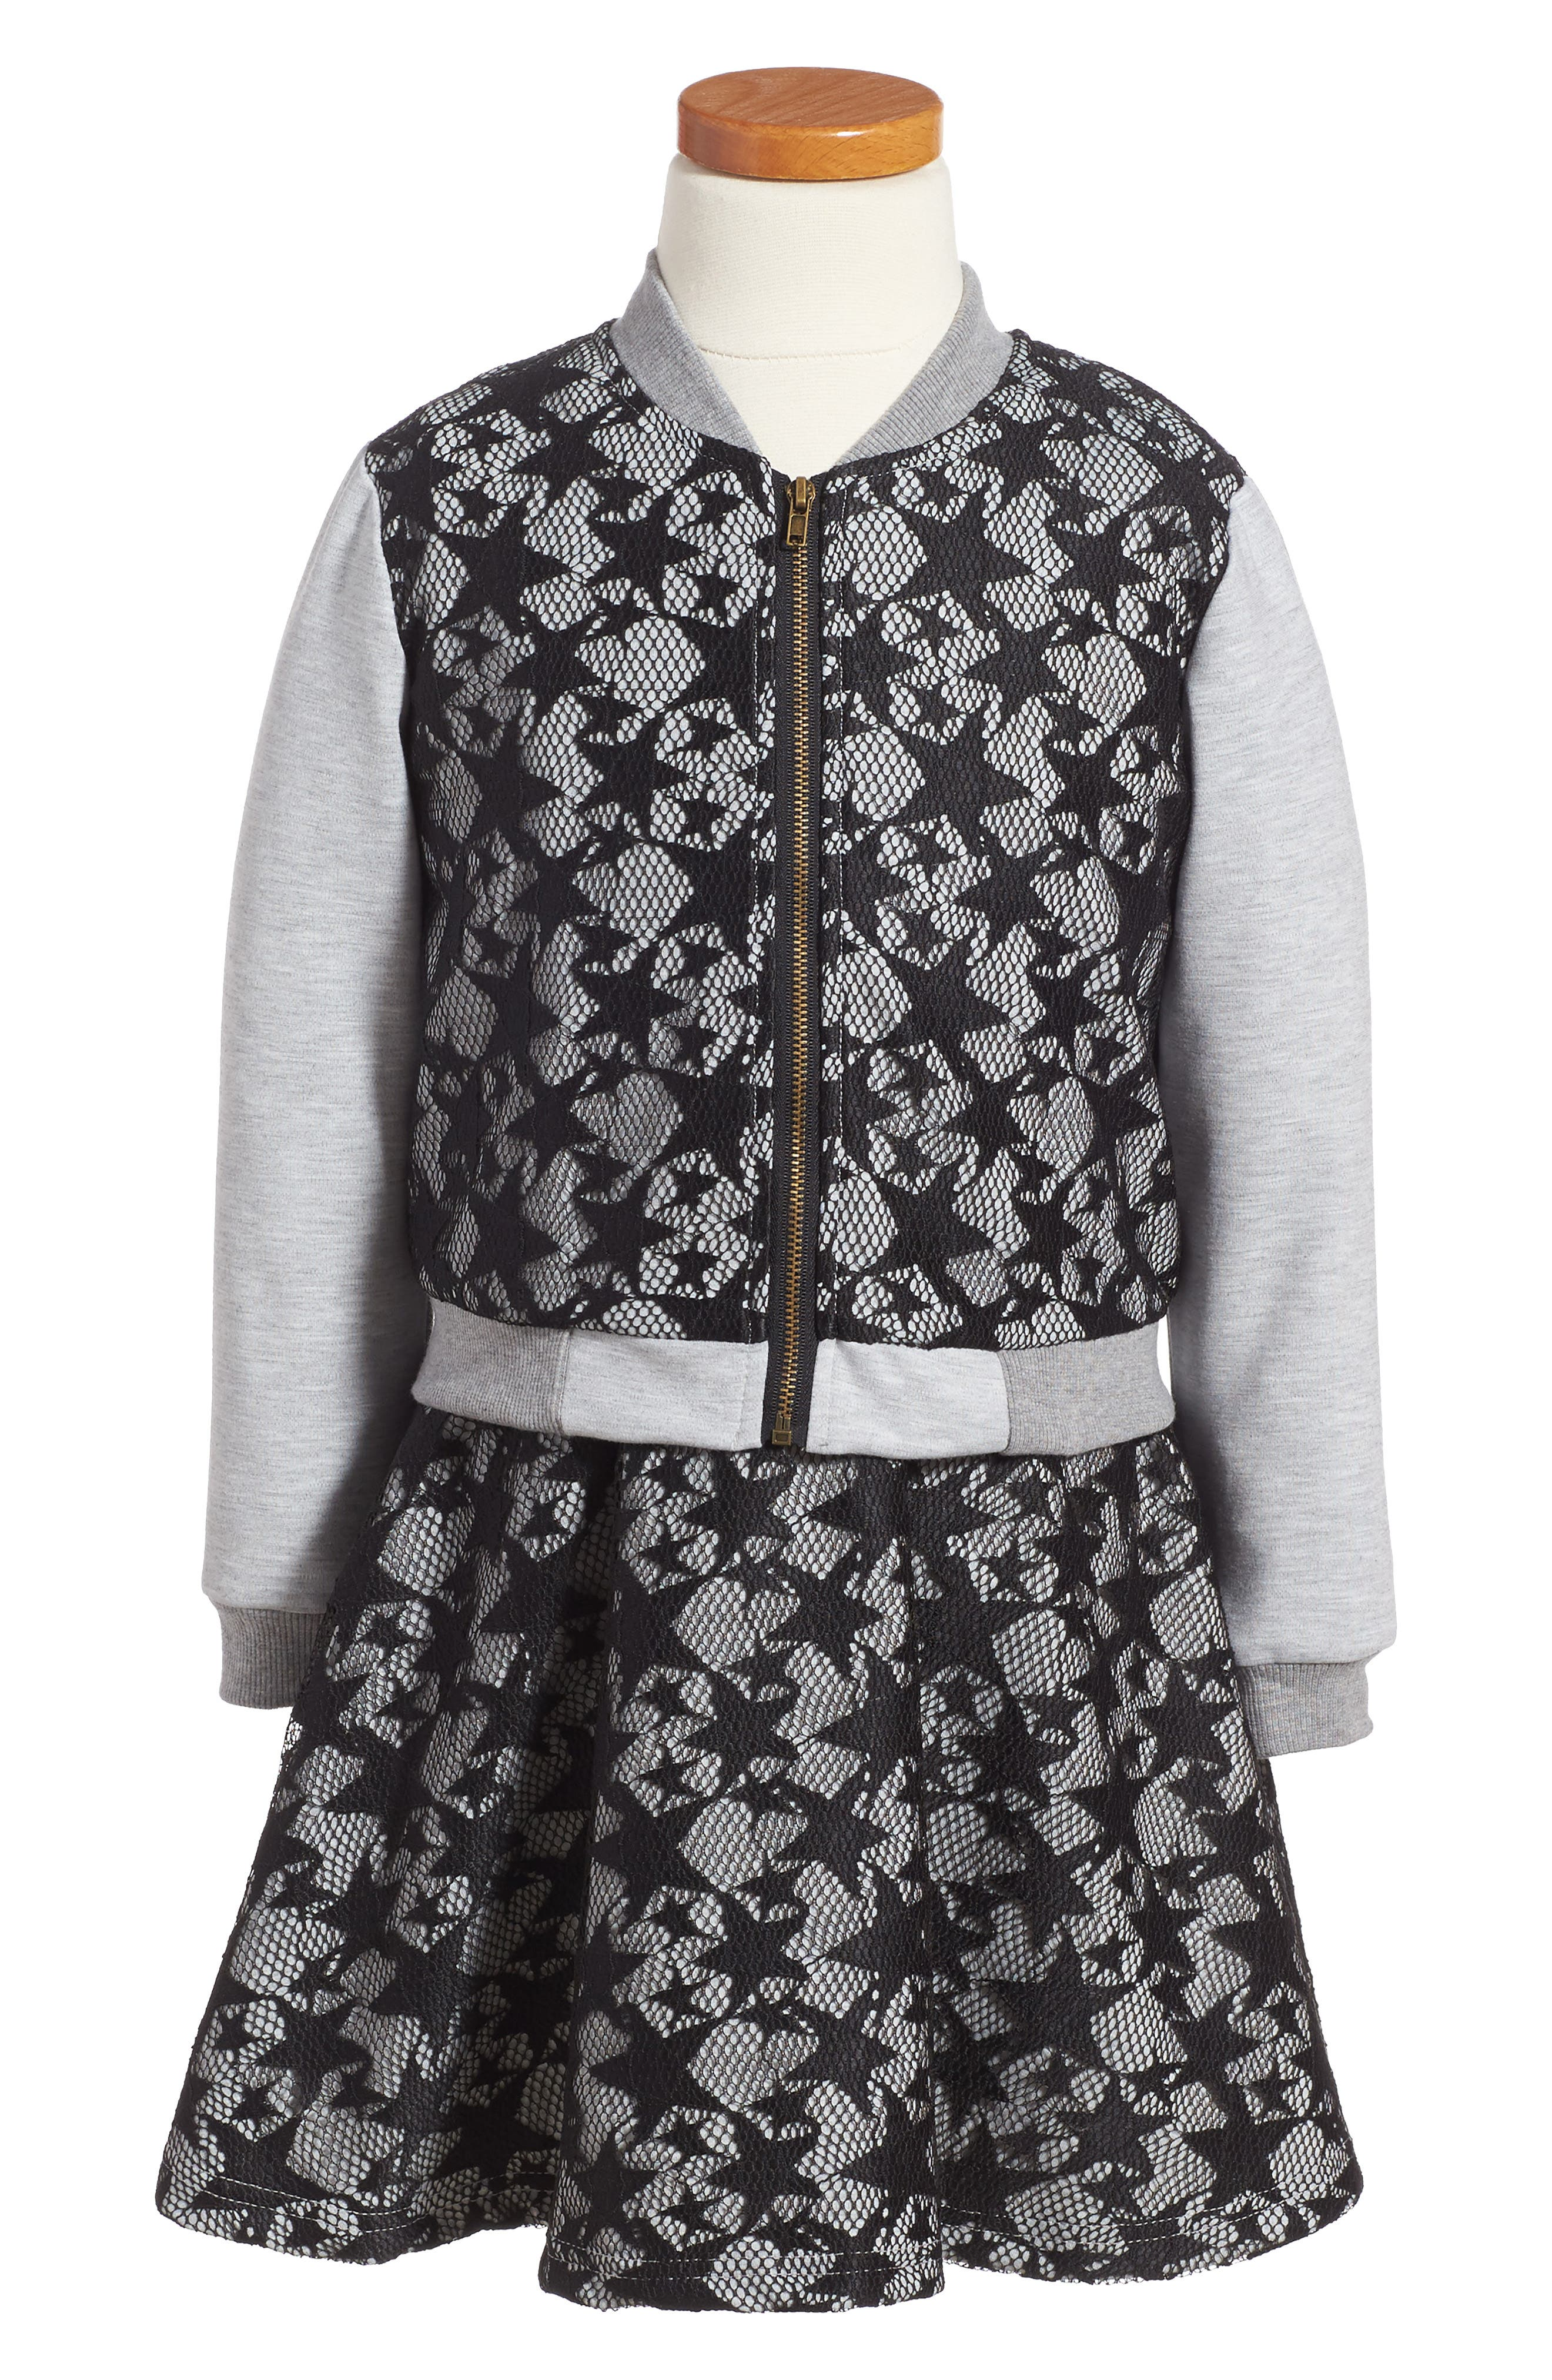 Pippa & Julie Lace Dress & Jacket Set (Toddler Girls & Little Girls)